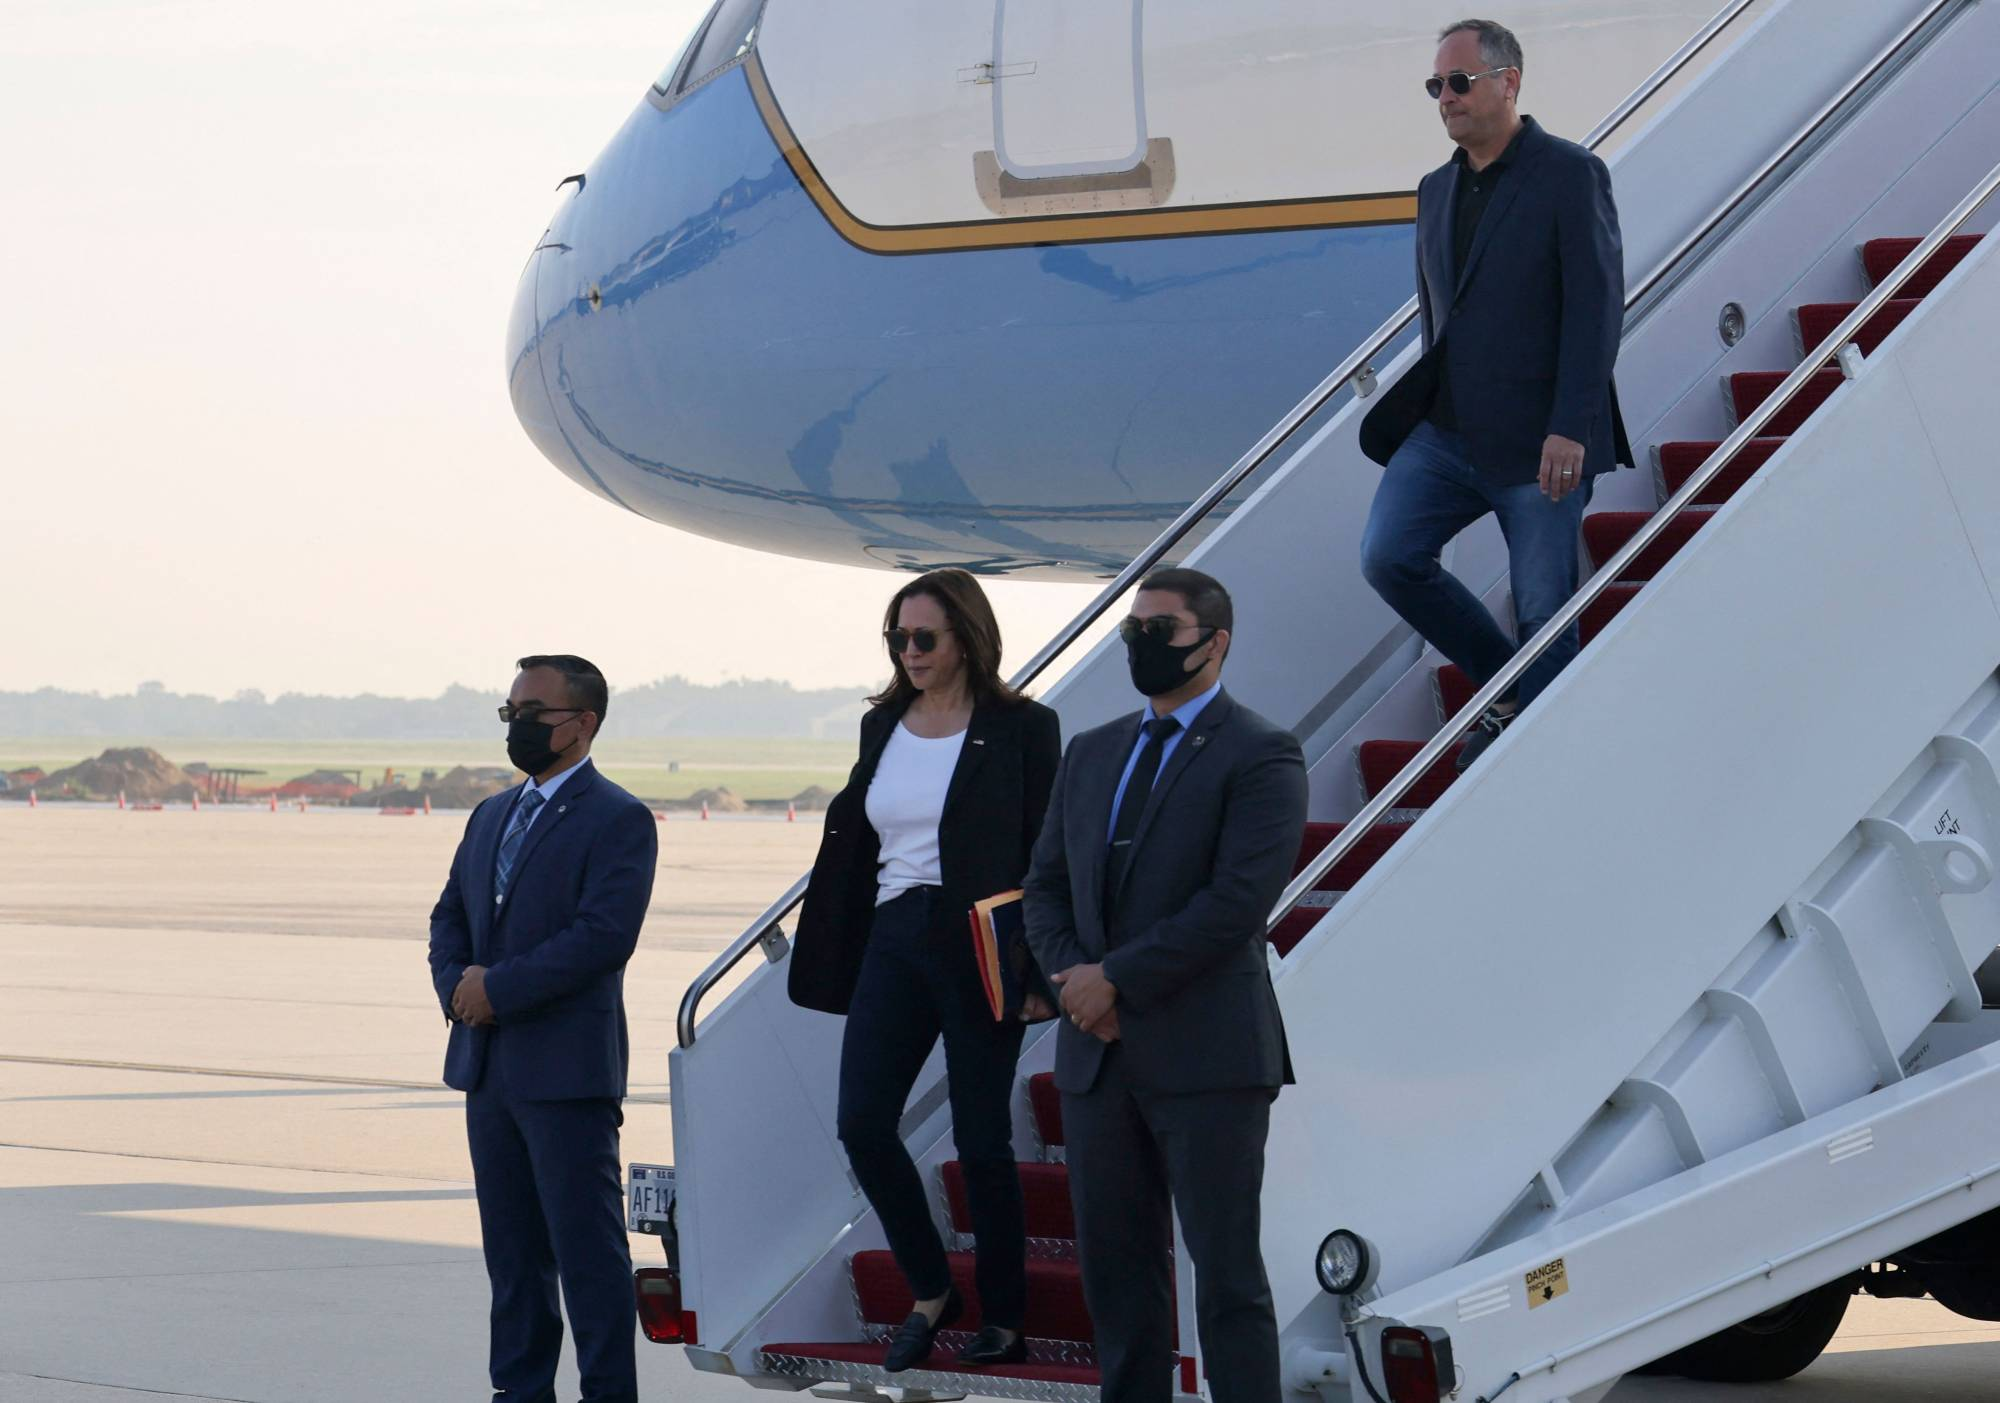 U.S. Vice President Kamala Harris arrives at Joint Base Andrews in Maryland on Aug. 27 after finishing up her Southeast Asia tour.   POOL / AFP-JIJI